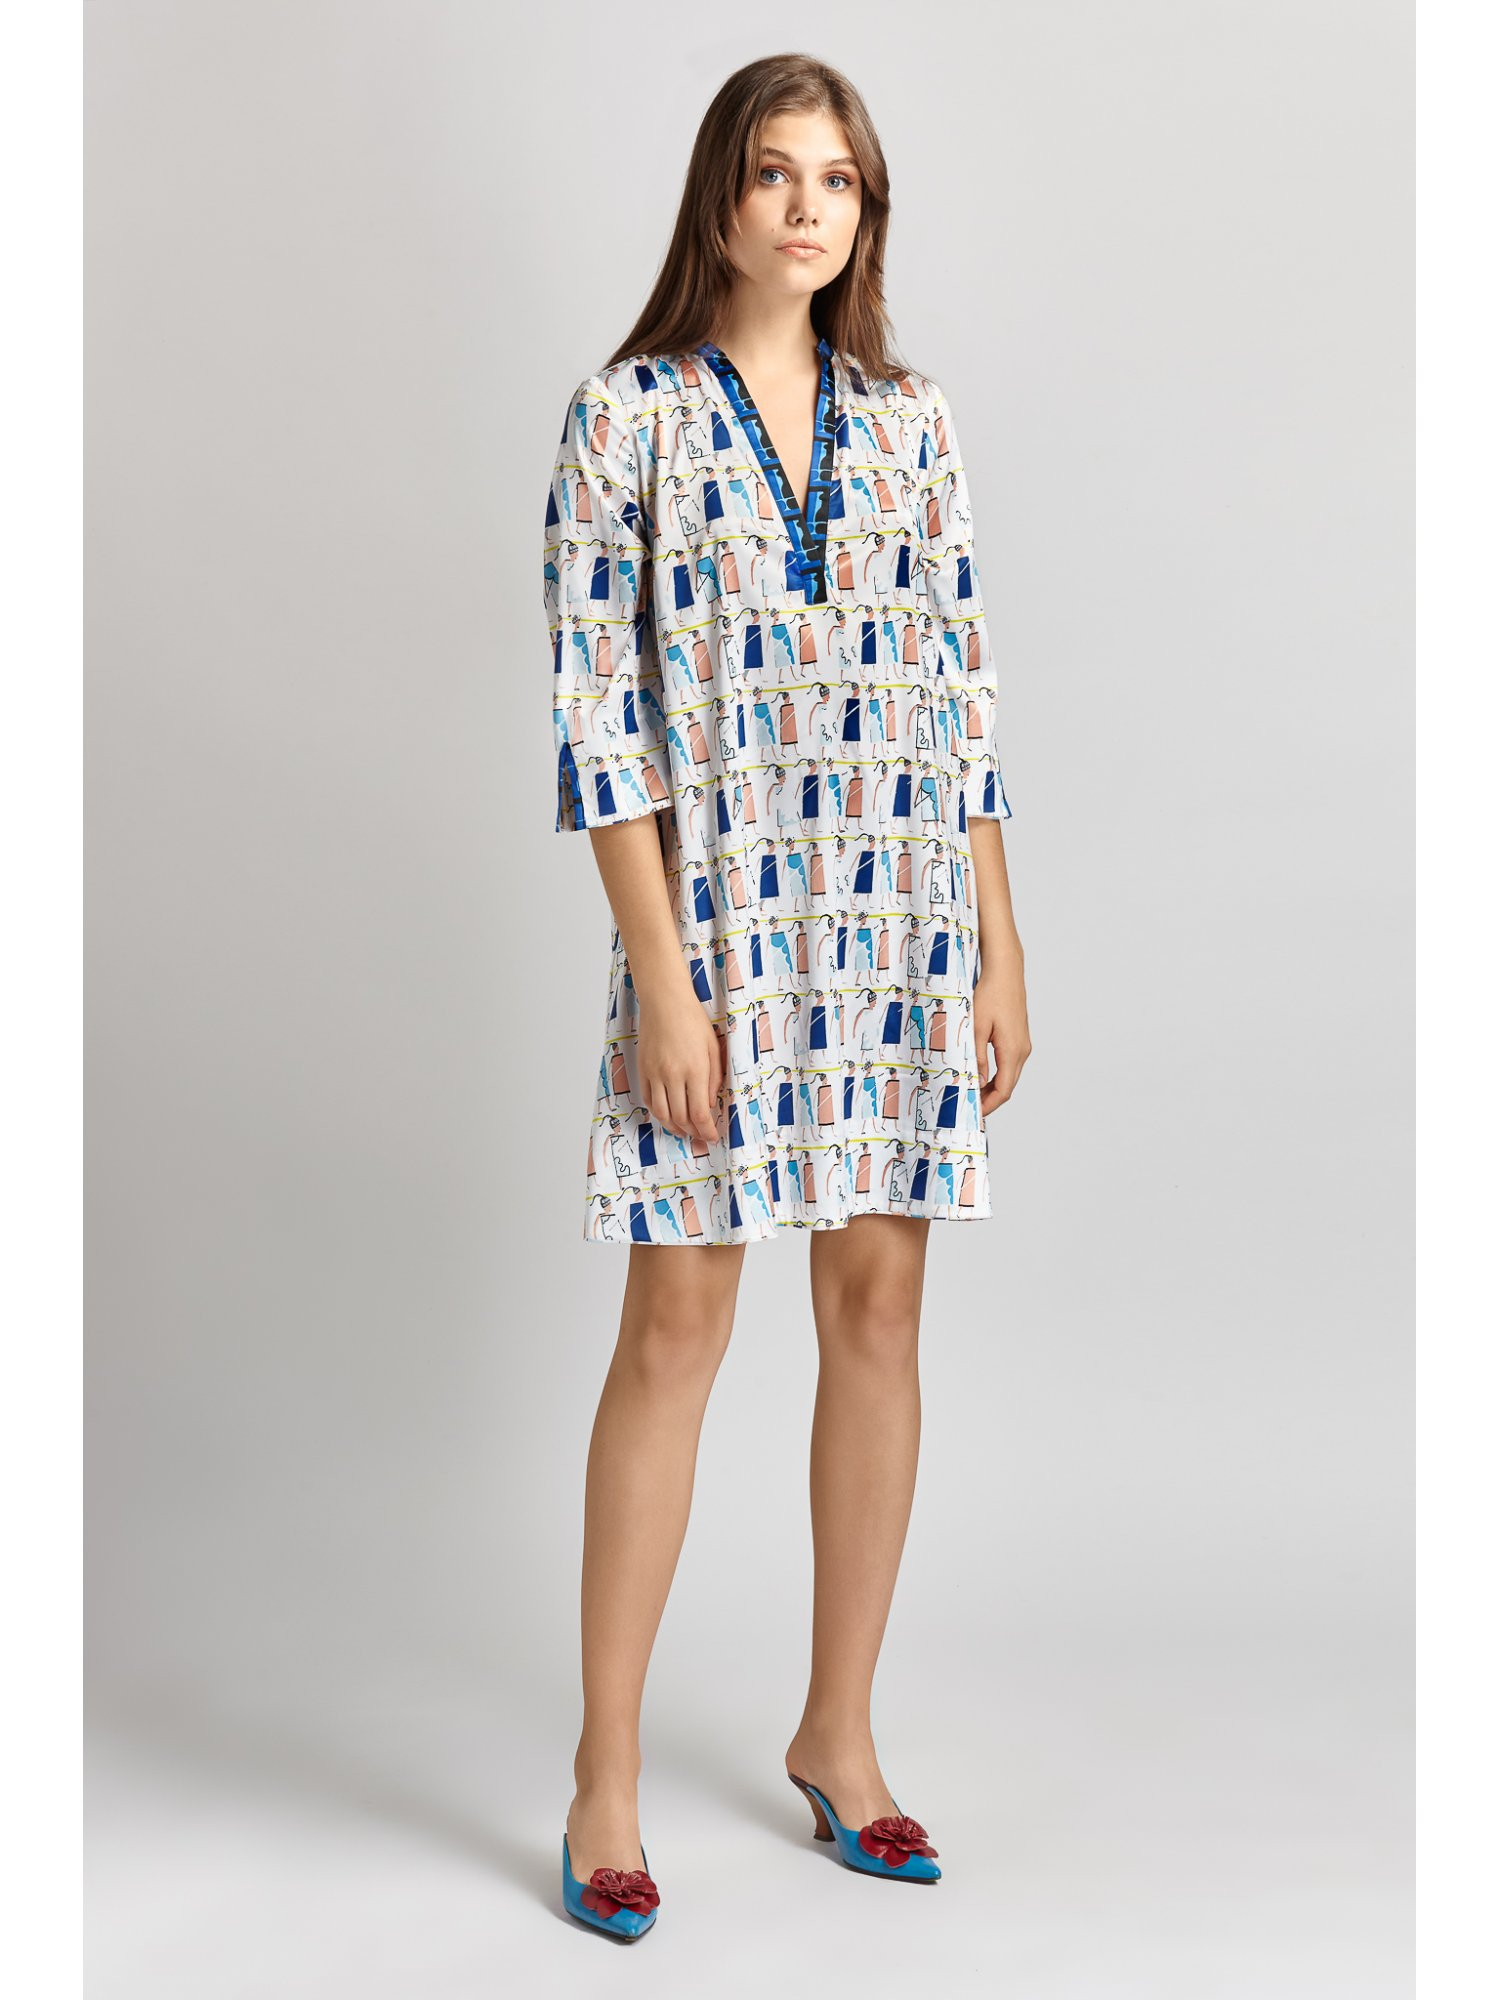 Ampelus dress